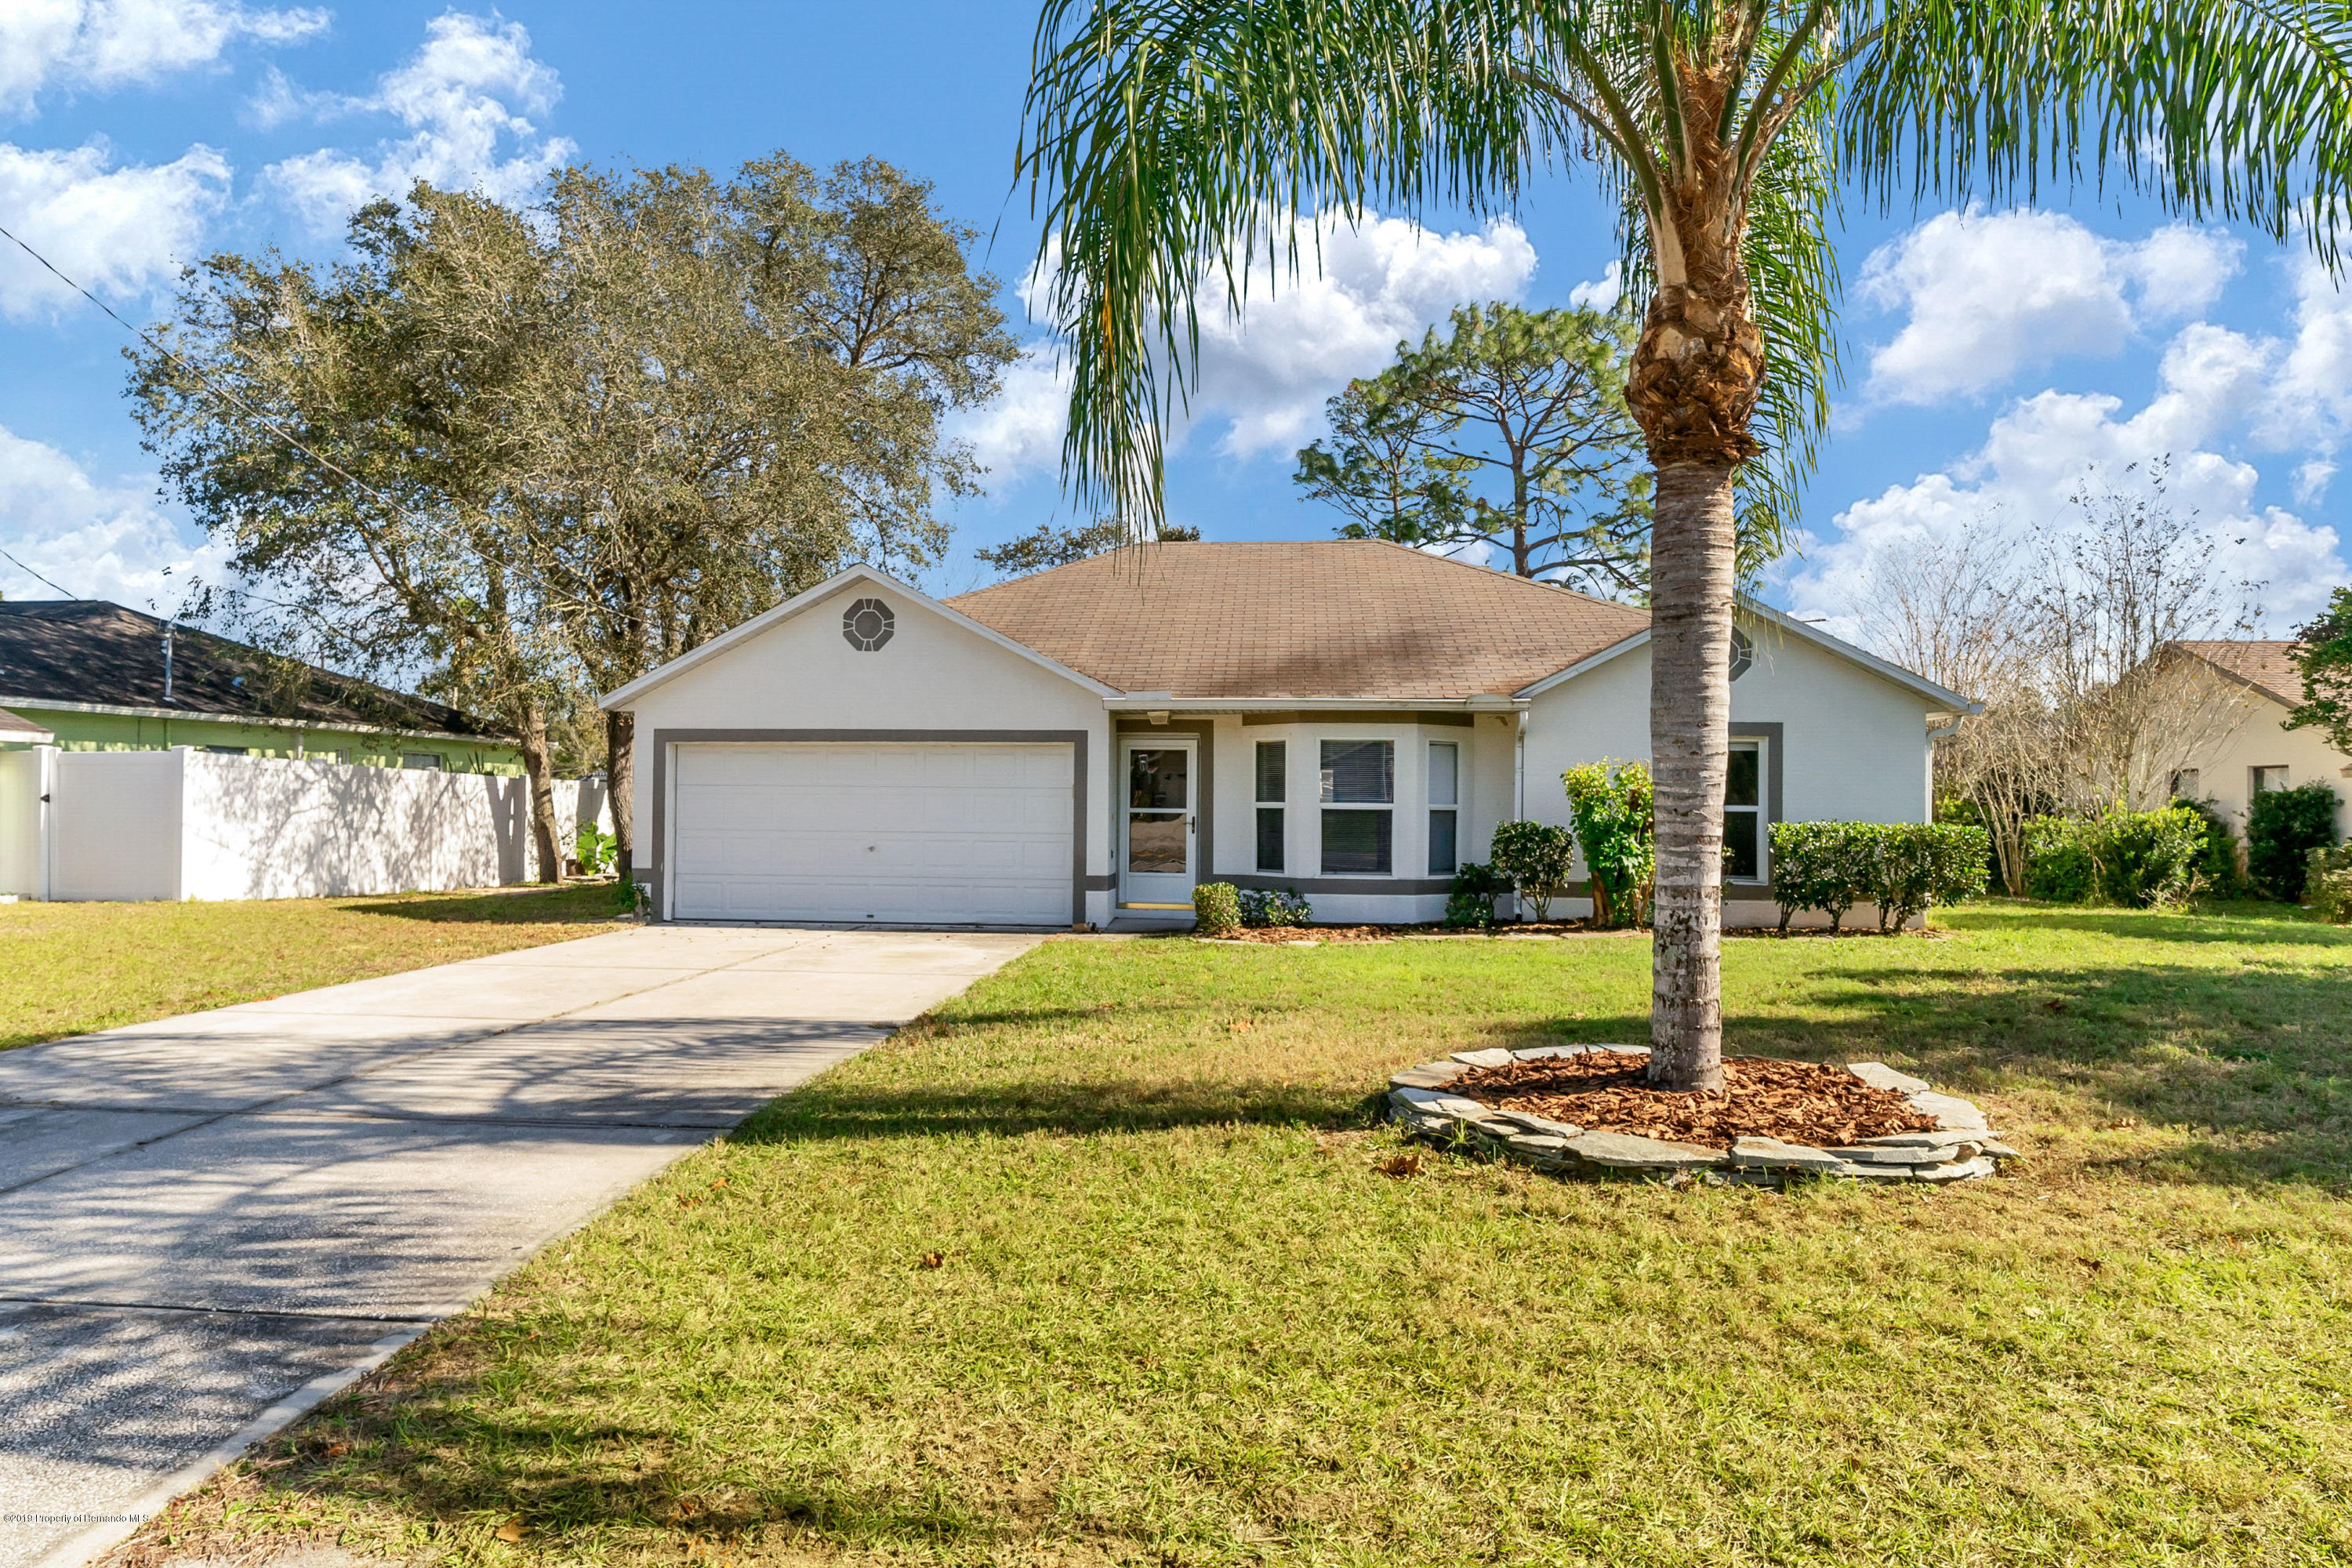 13732 Coronado Drive, Spring Hill, Florida 34609, 3 Bedrooms Bedrooms, ,2 BathroomsBathrooms,Residential,For Sale,Coronado,2206073